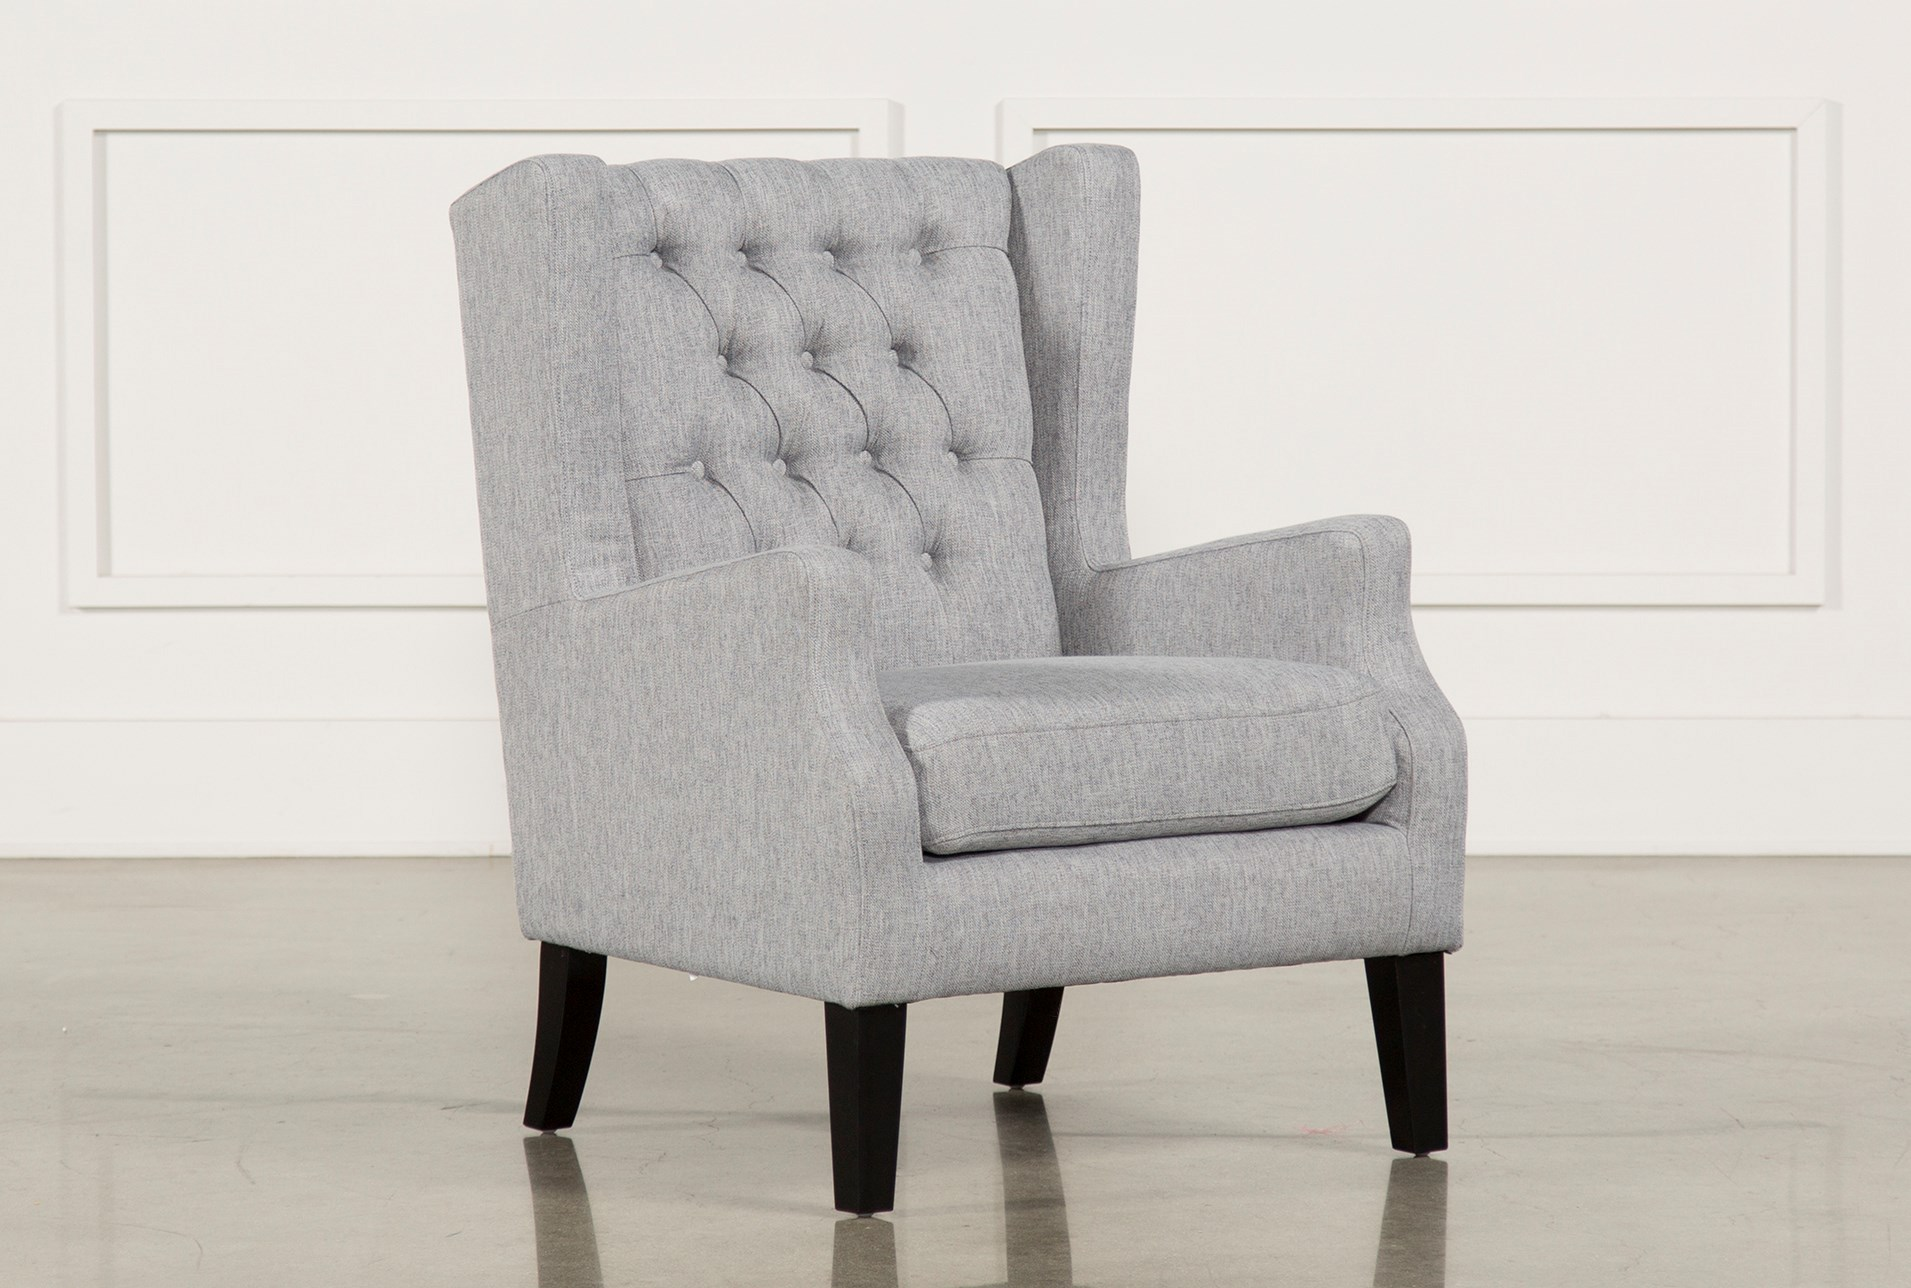 Peyton silver accent chair qty 1 has been successfully added to your cart